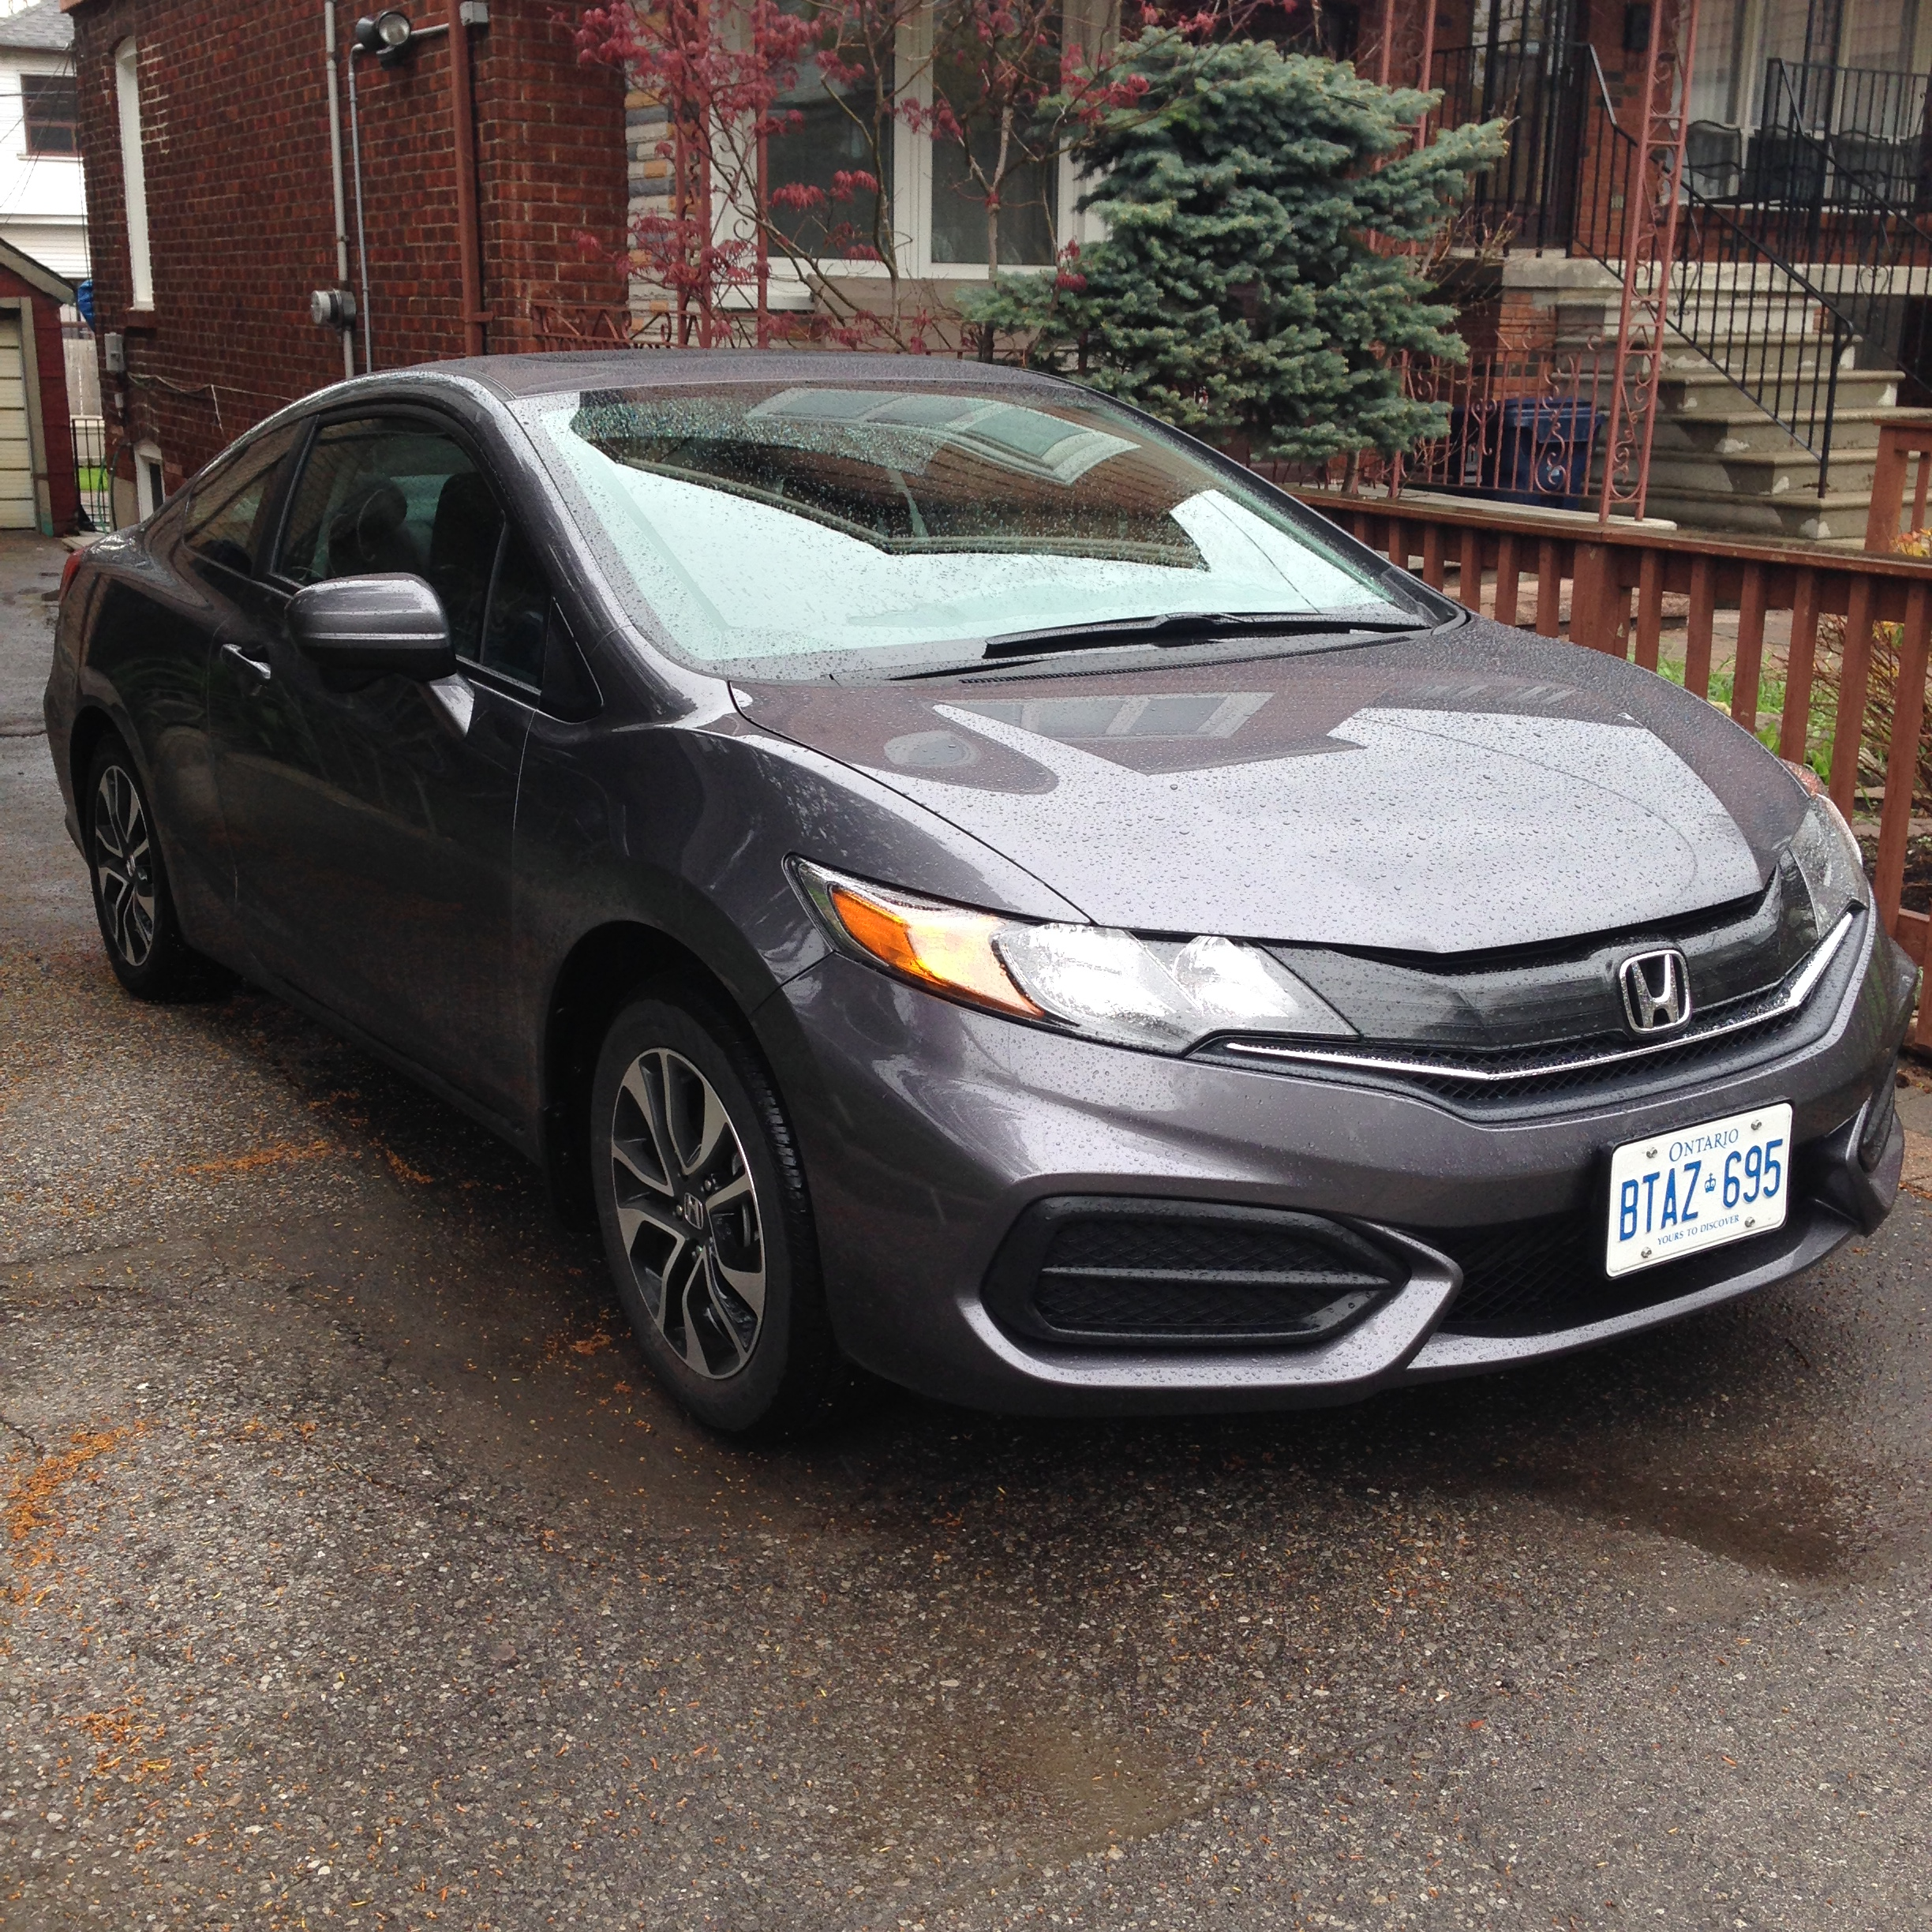 2014 honda civic coupe ex keeping the balance. Black Bedroom Furniture Sets. Home Design Ideas